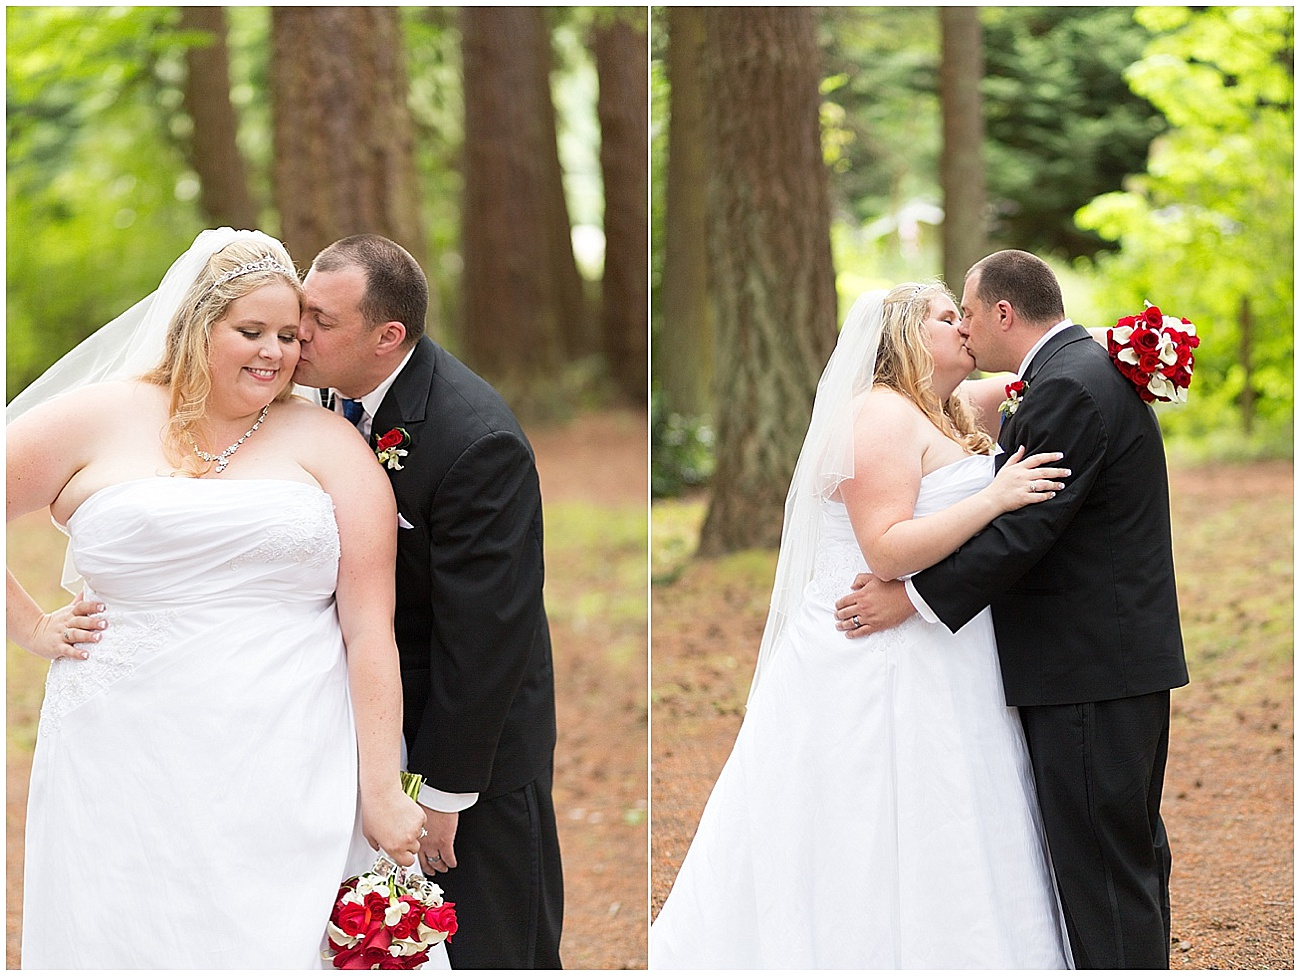 Hux_KitsapMemorialPark_Wedding_0003